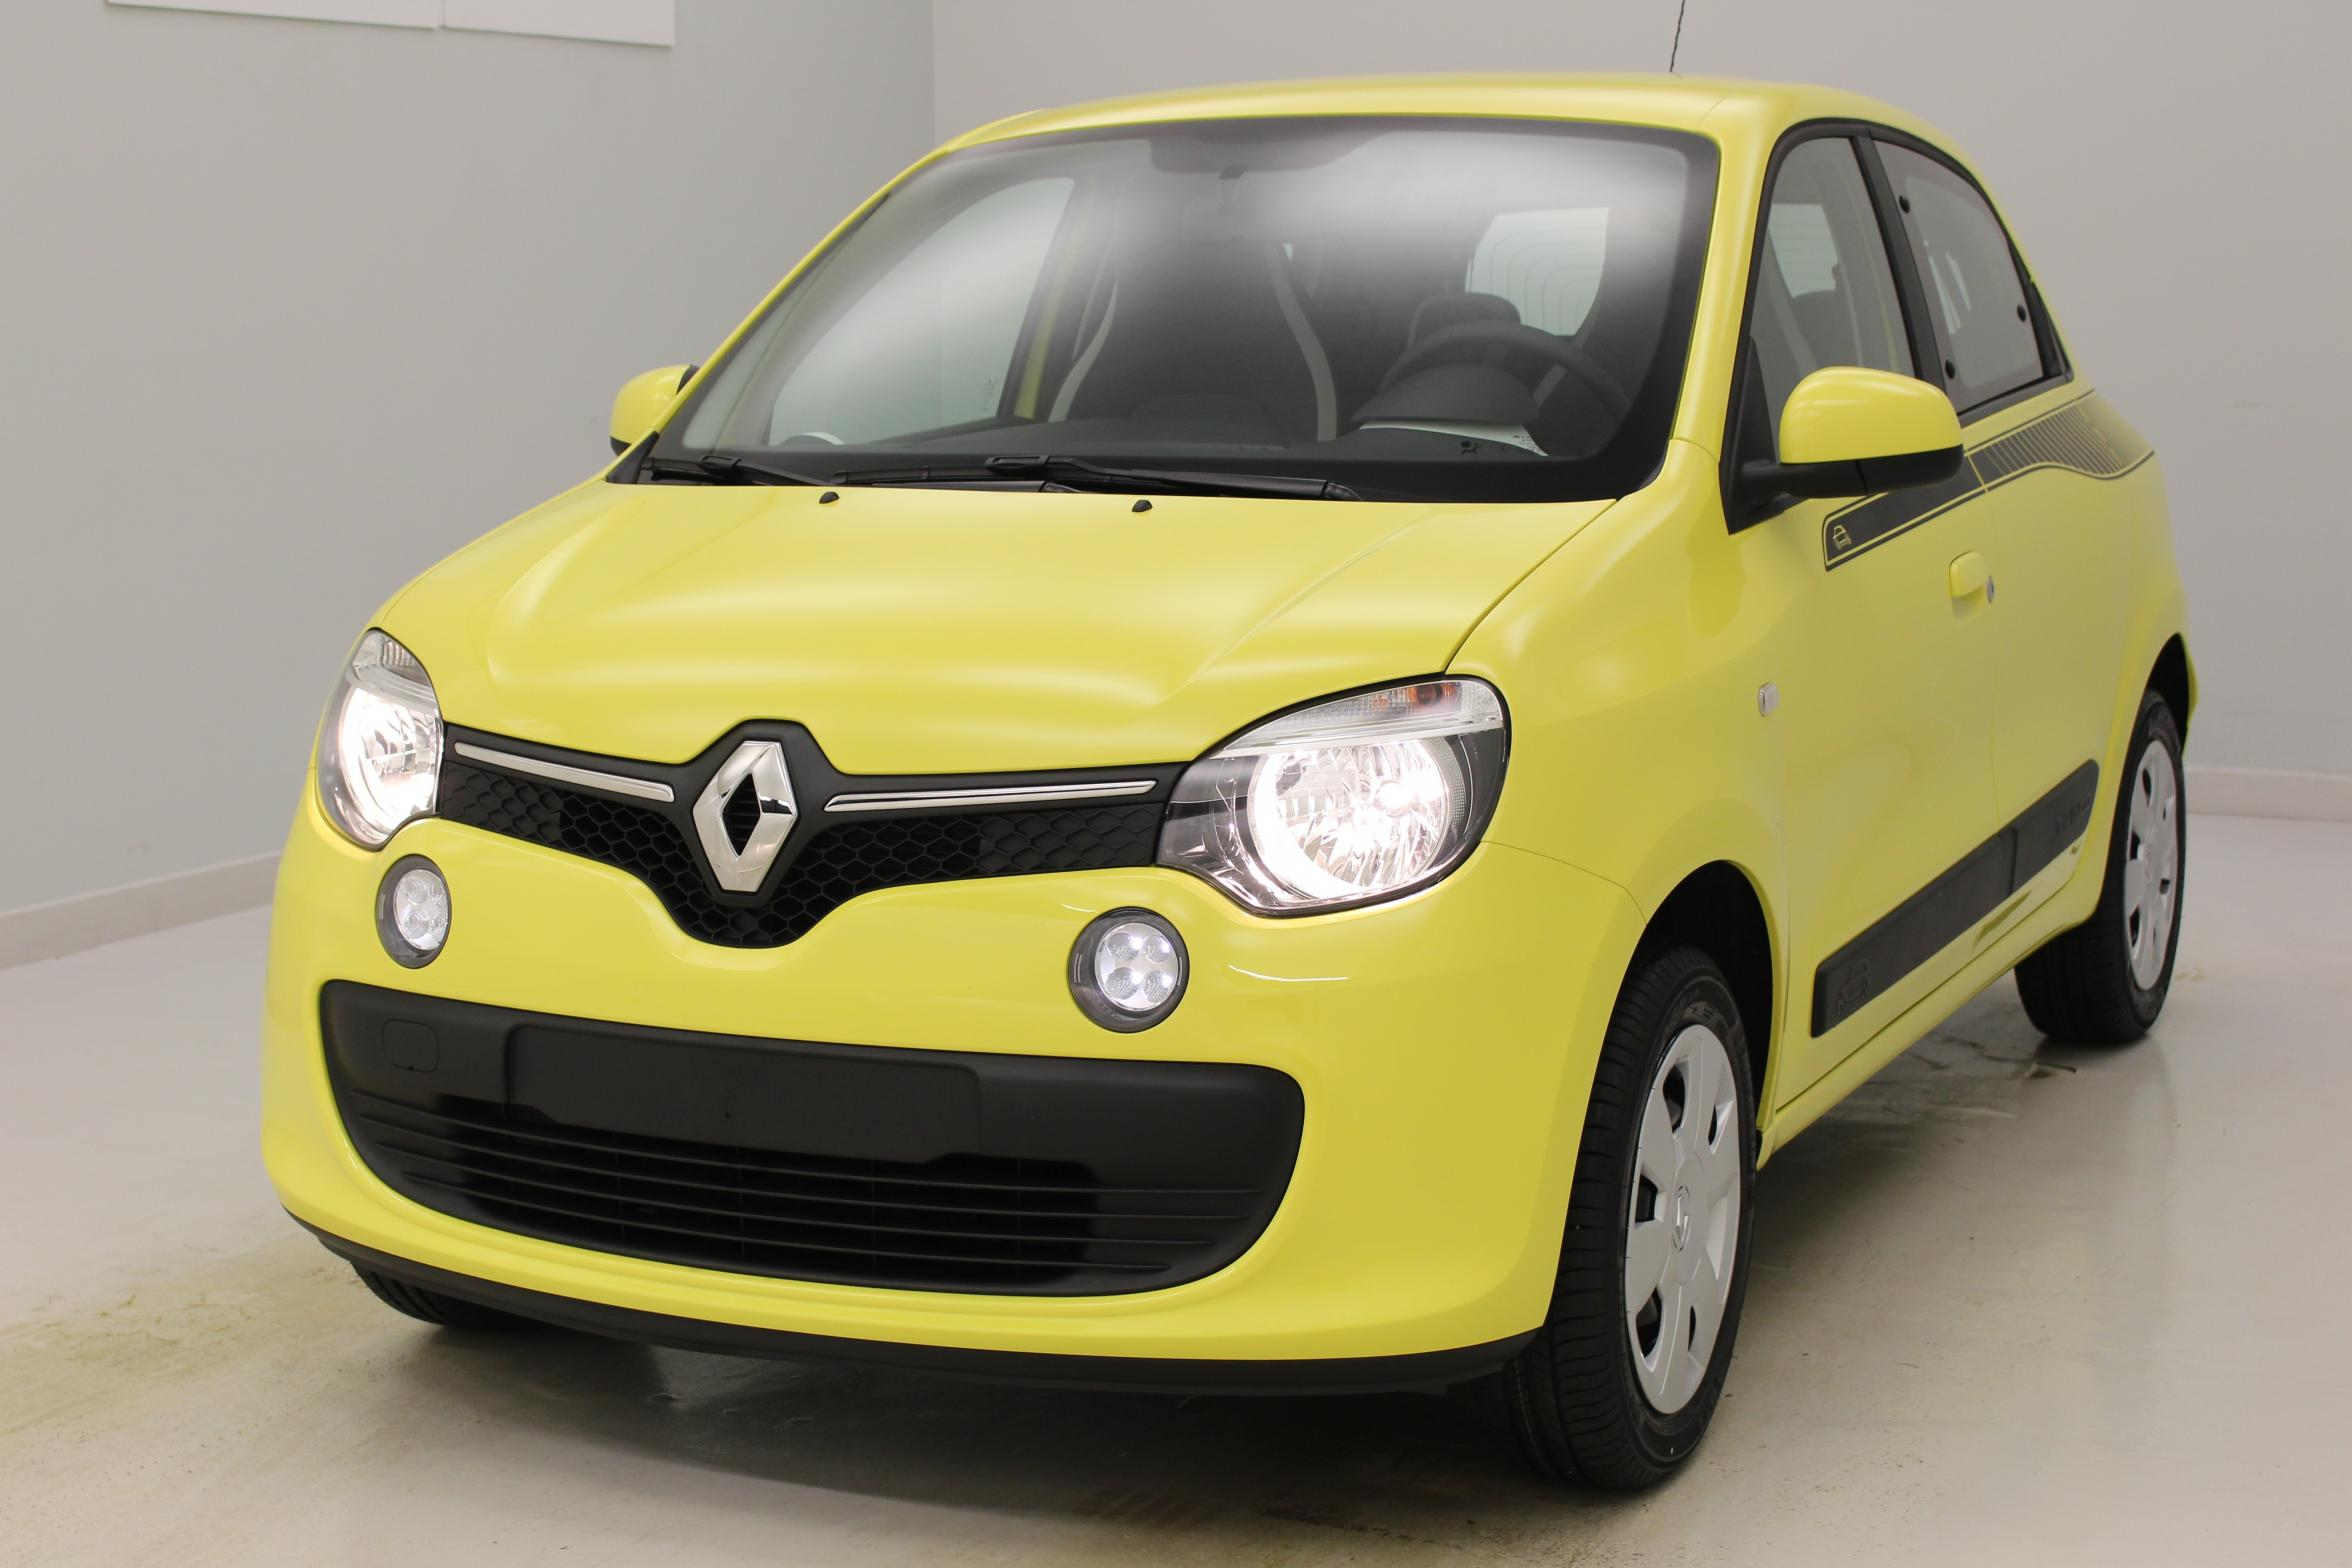 renault twingo nouvelle 1 0 sce 70 eco2 stop start jaune eclair avec options zen essence 45360816. Black Bedroom Furniture Sets. Home Design Ideas